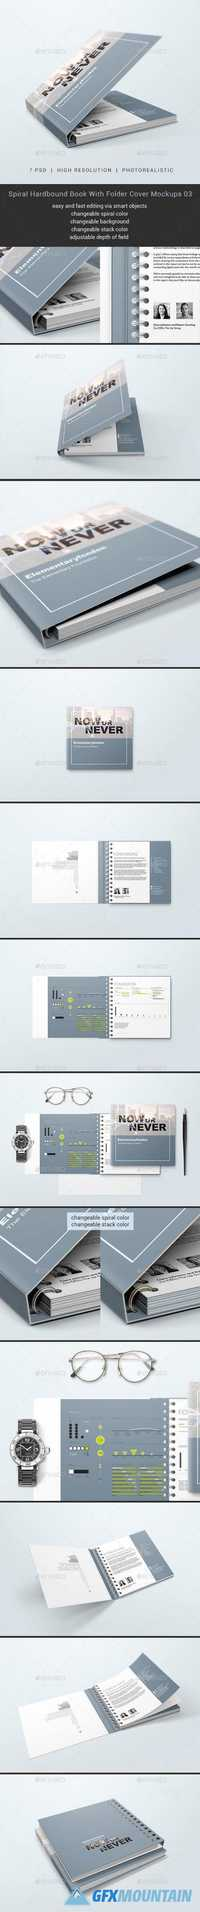 Spiral Hardbound Book With Folder Cover Mockups 03 20628864